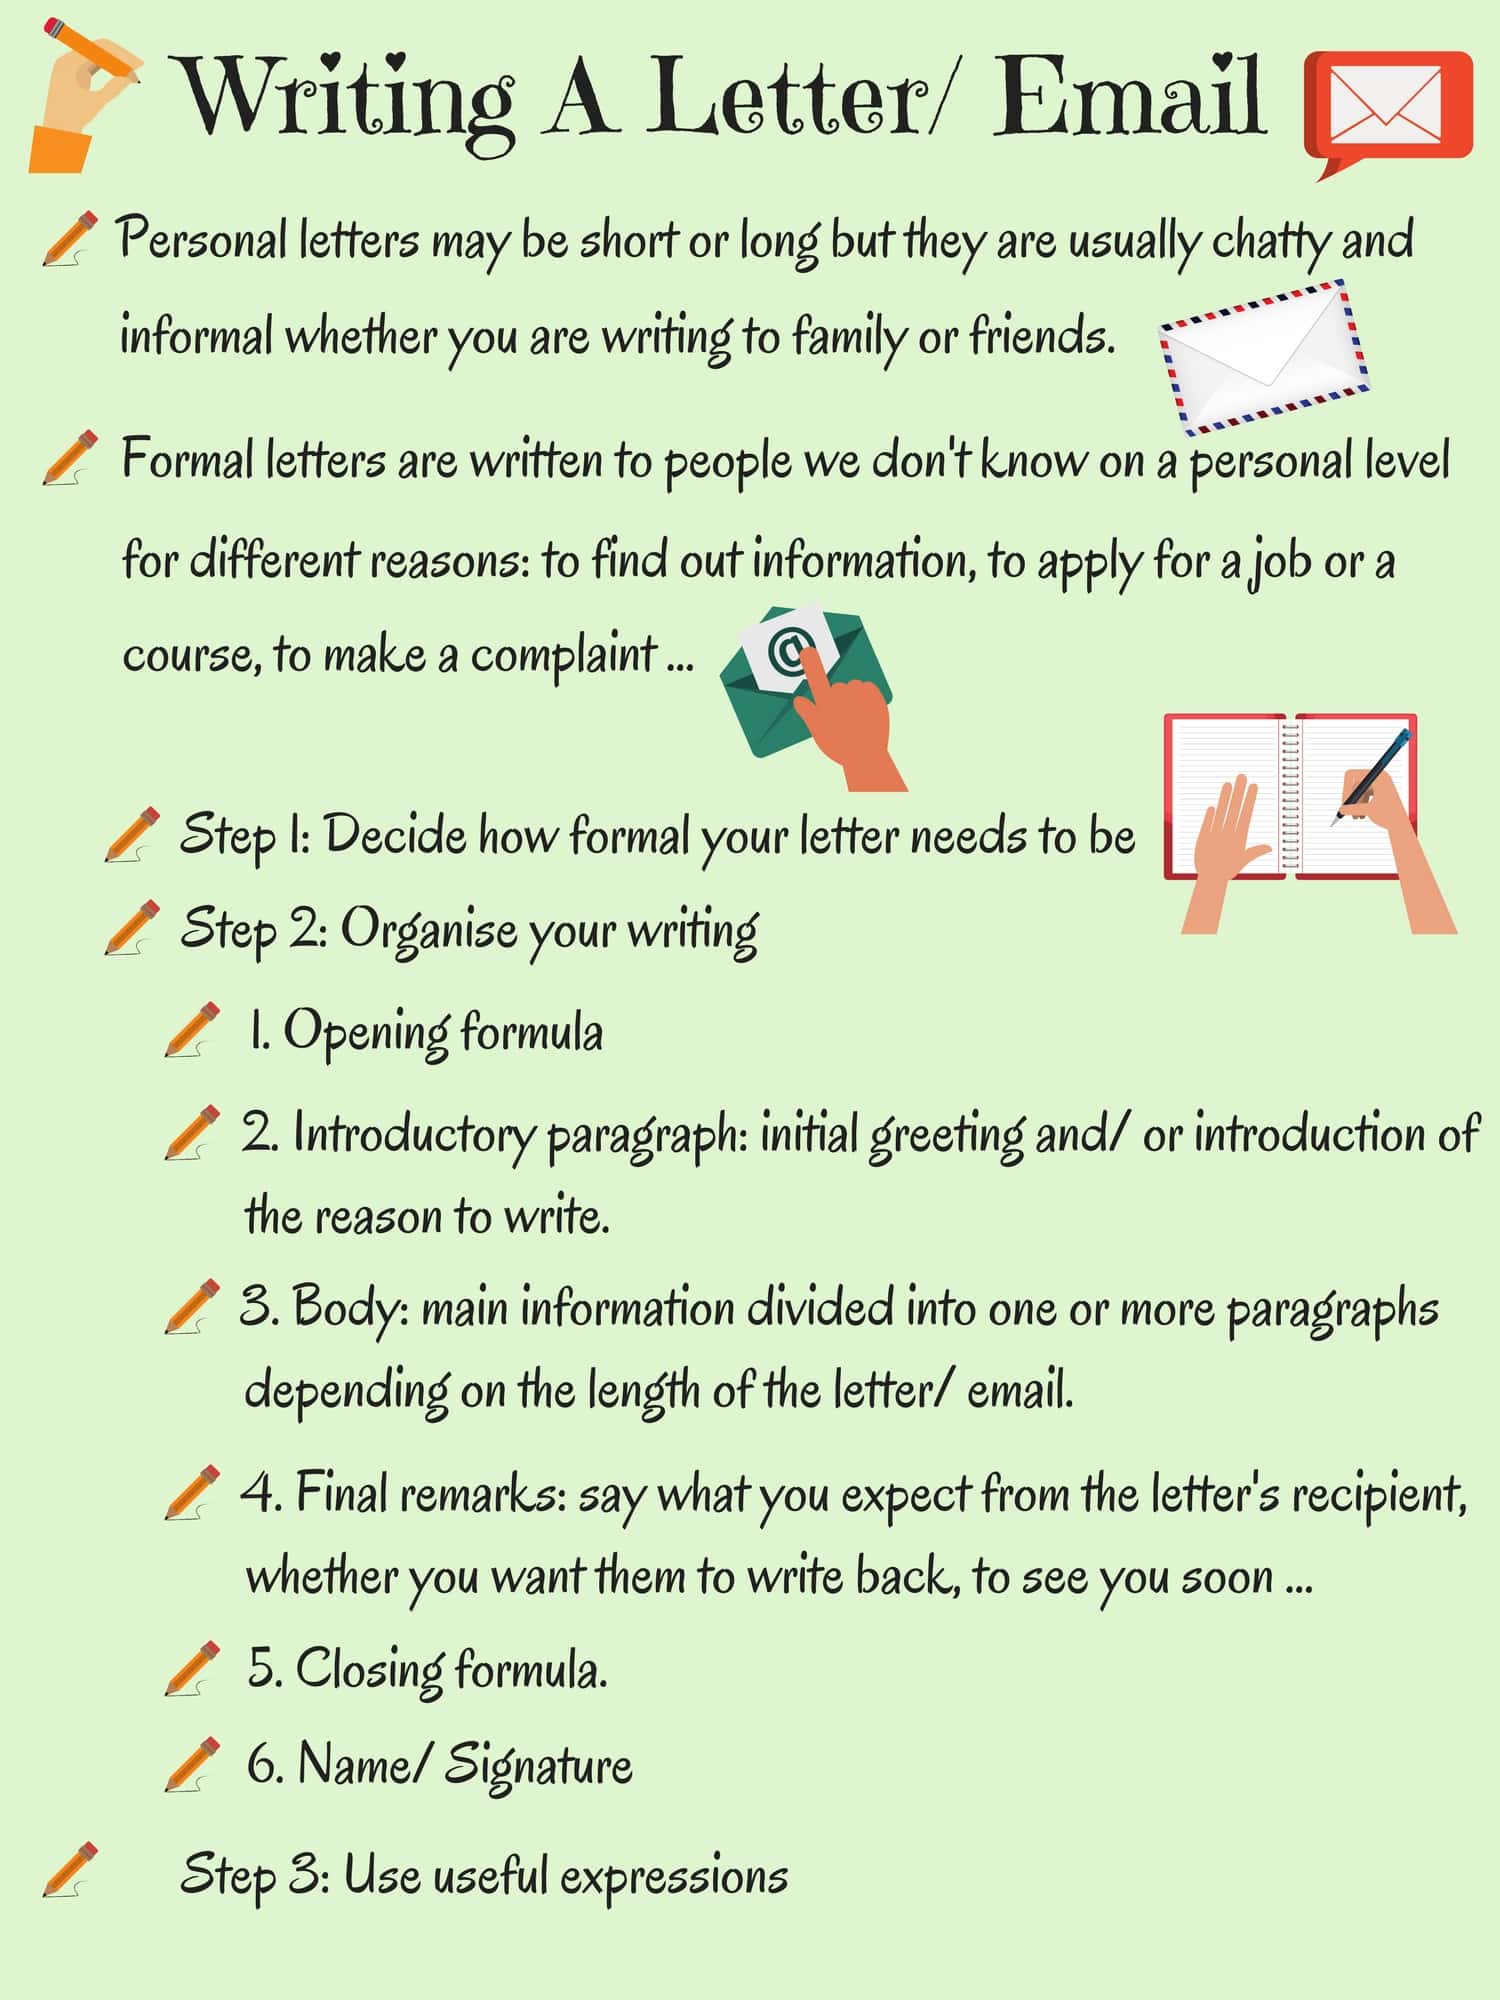 Writing a Letter or Email